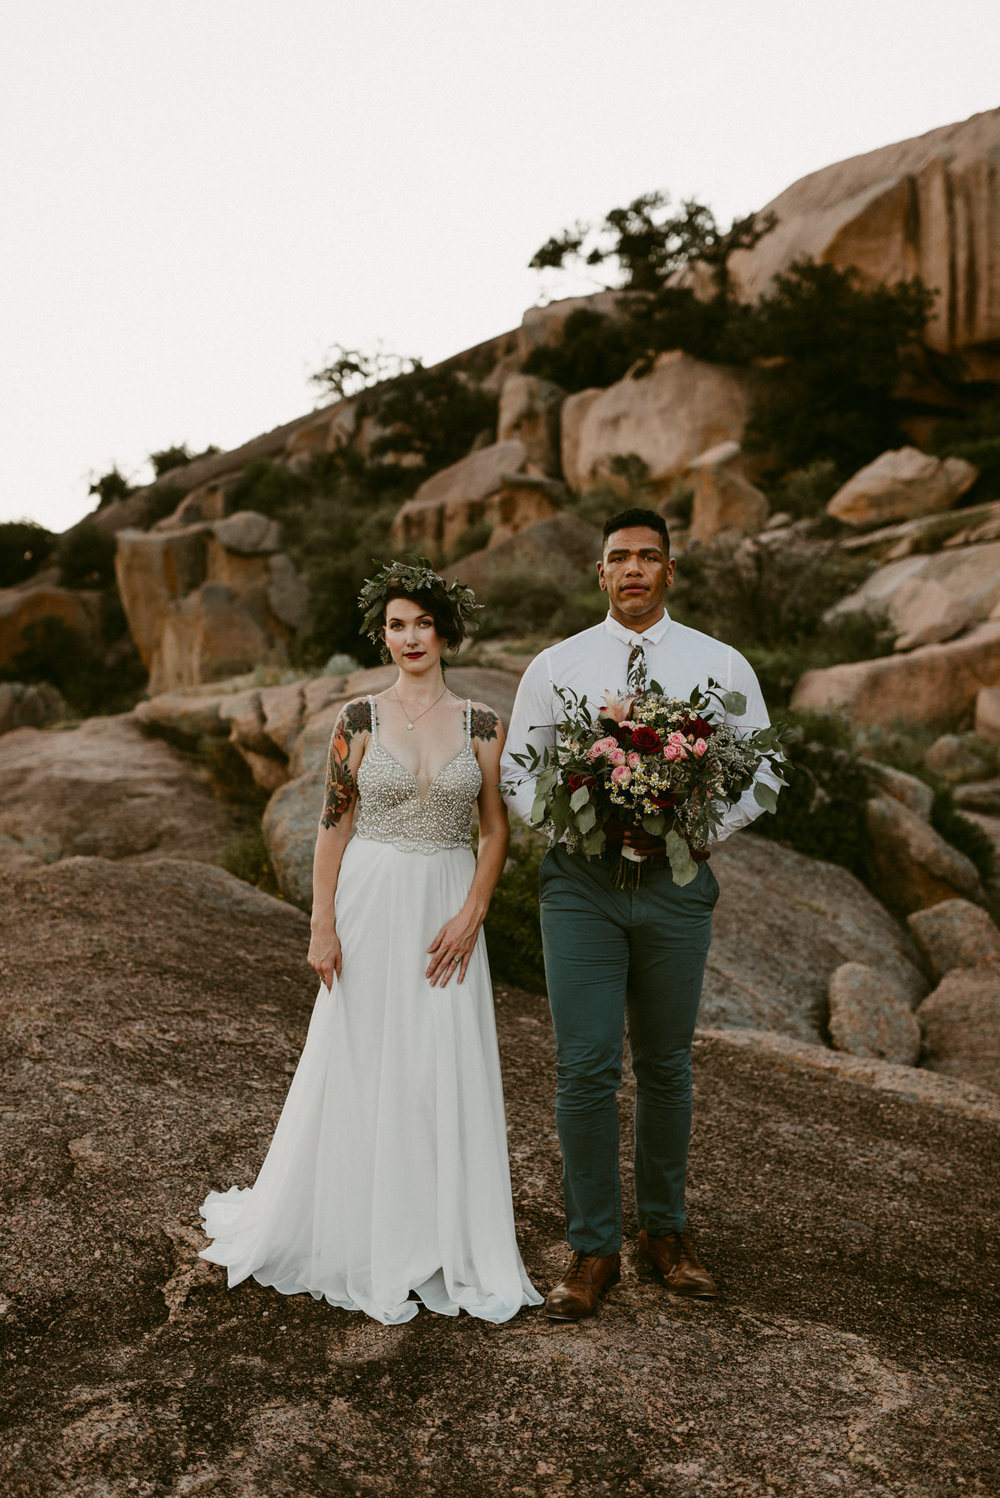 Kerlyn-Van-Gelder-Photography-Texas-Photographer424.jpgBohemian-Floral-Greenery-Macrame-Southwestern-Adventurous-Desert-Elopement-Enchanted-Rock-Natural-Park-Kerlyn-Van-Gelder-Photography-Austin-Wedding-Photographer